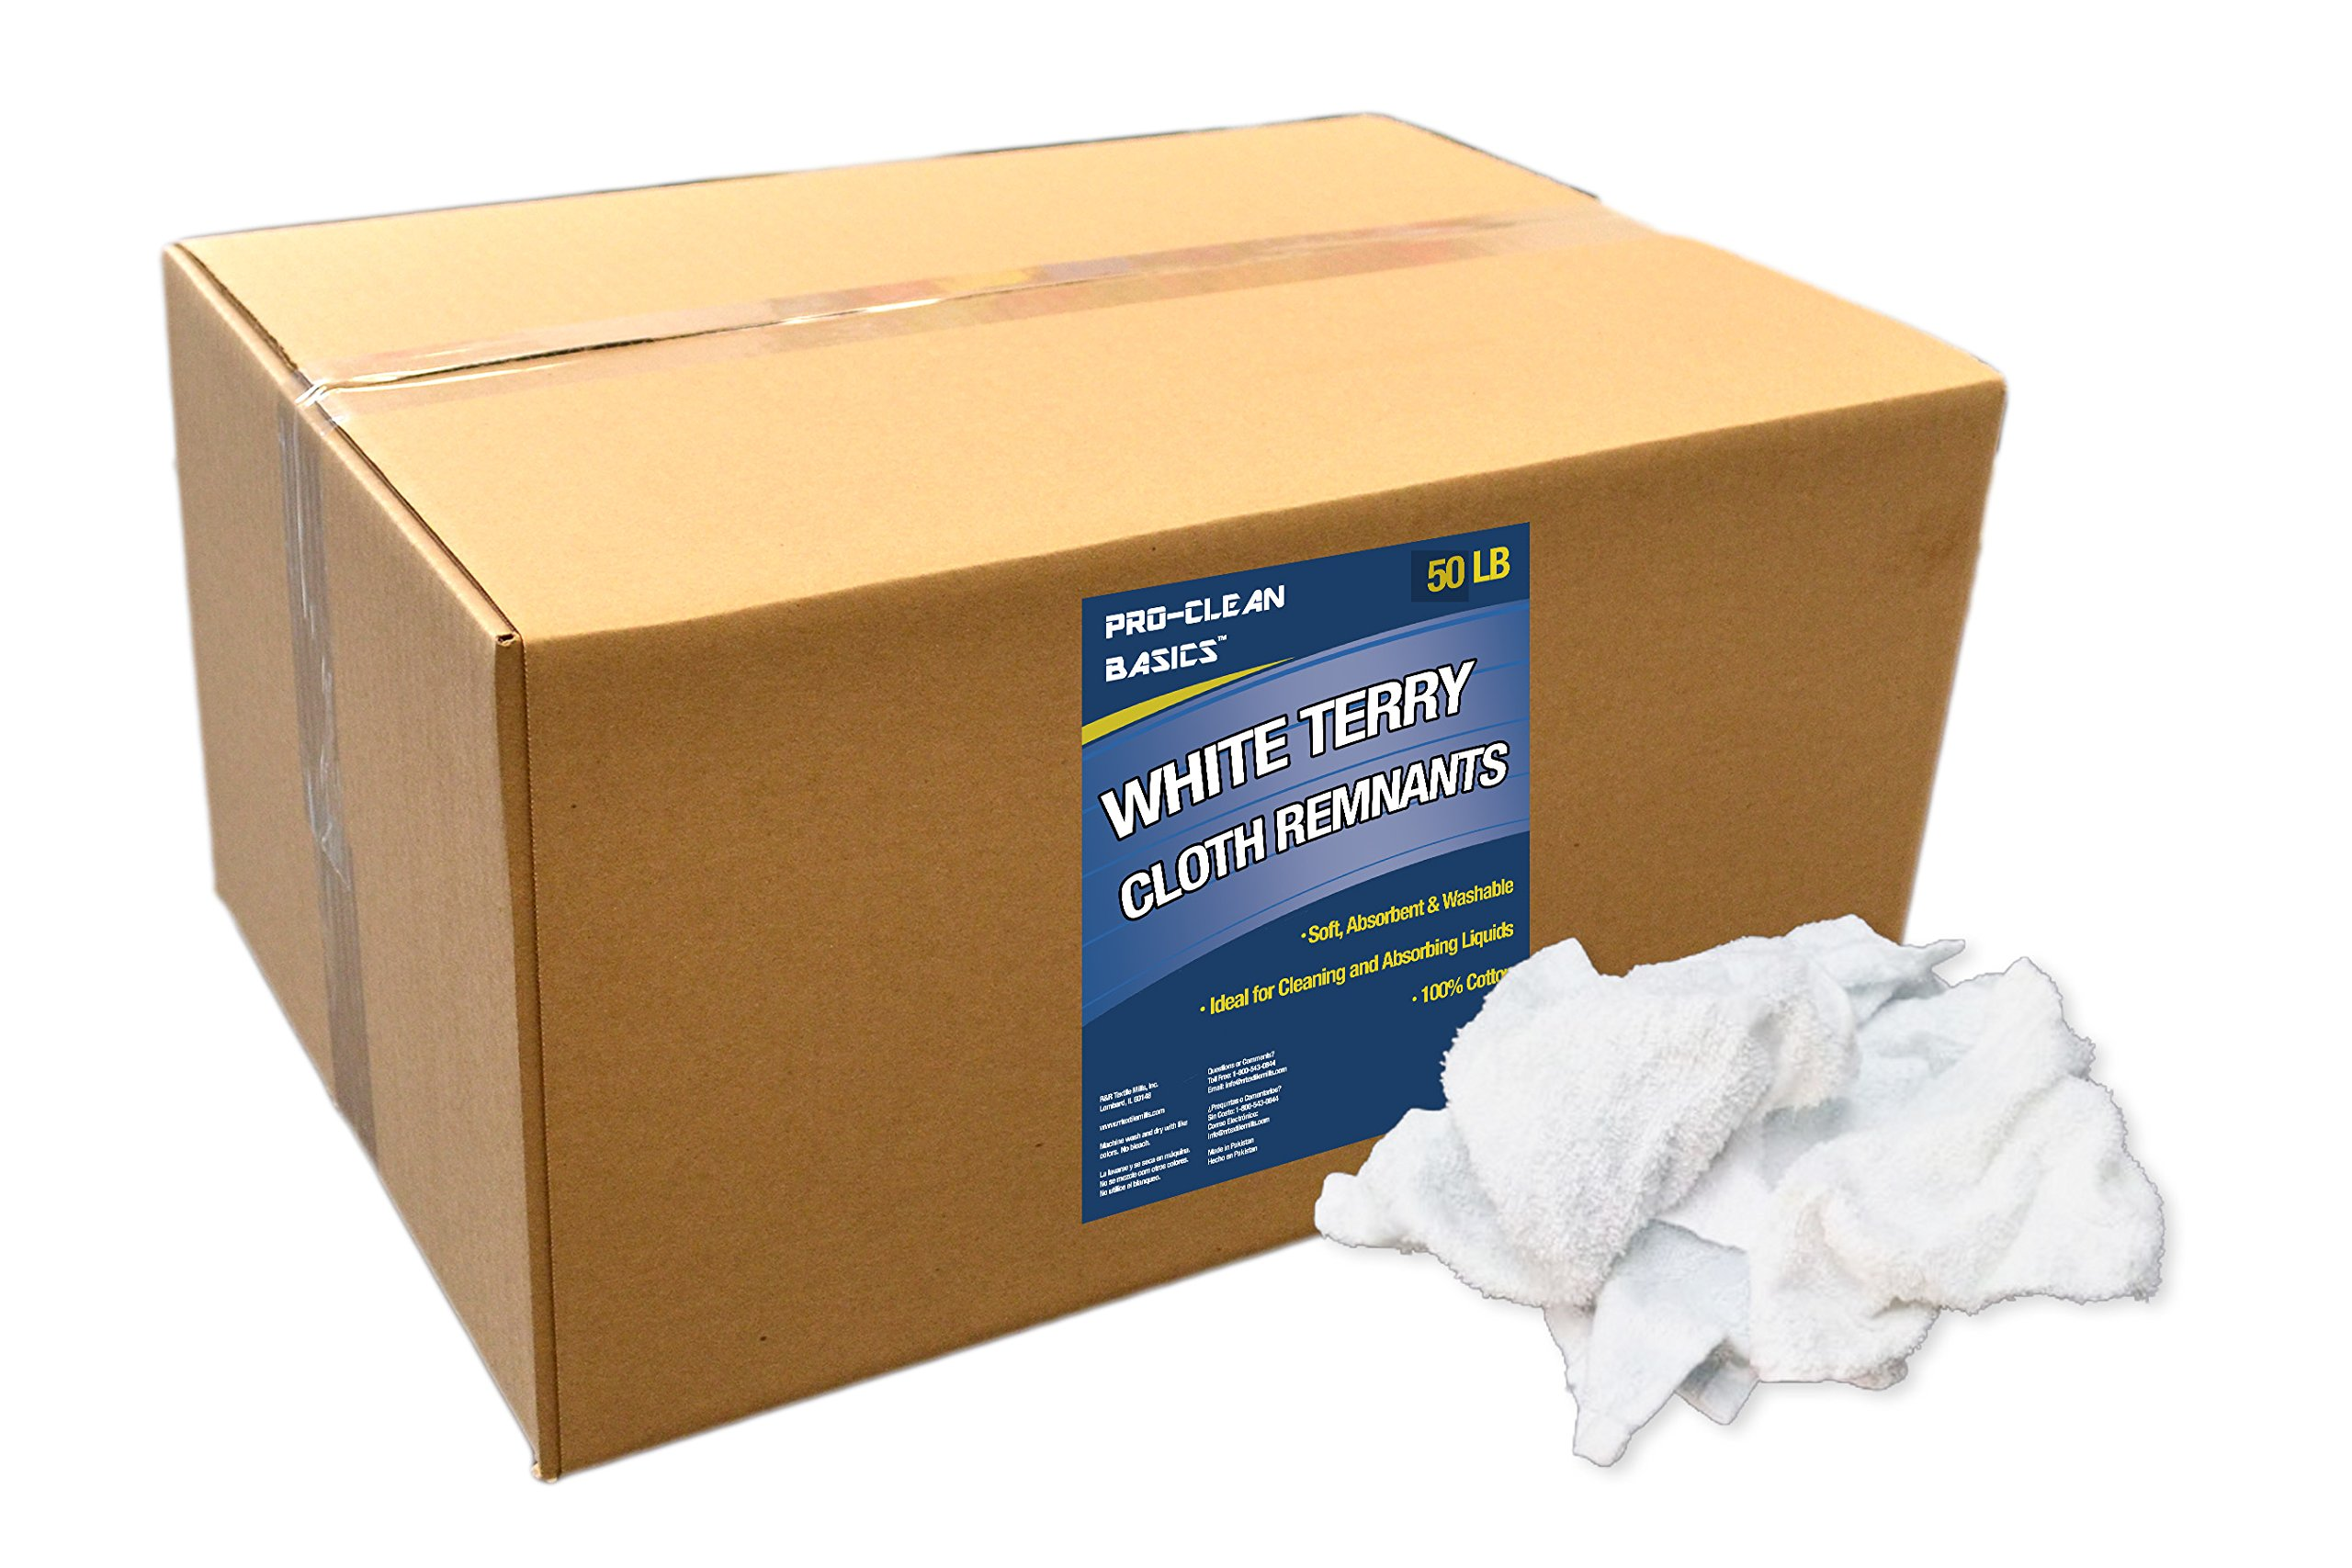 Pro-Clean Basics White Terry Cloth Rags: 50 lb. Box